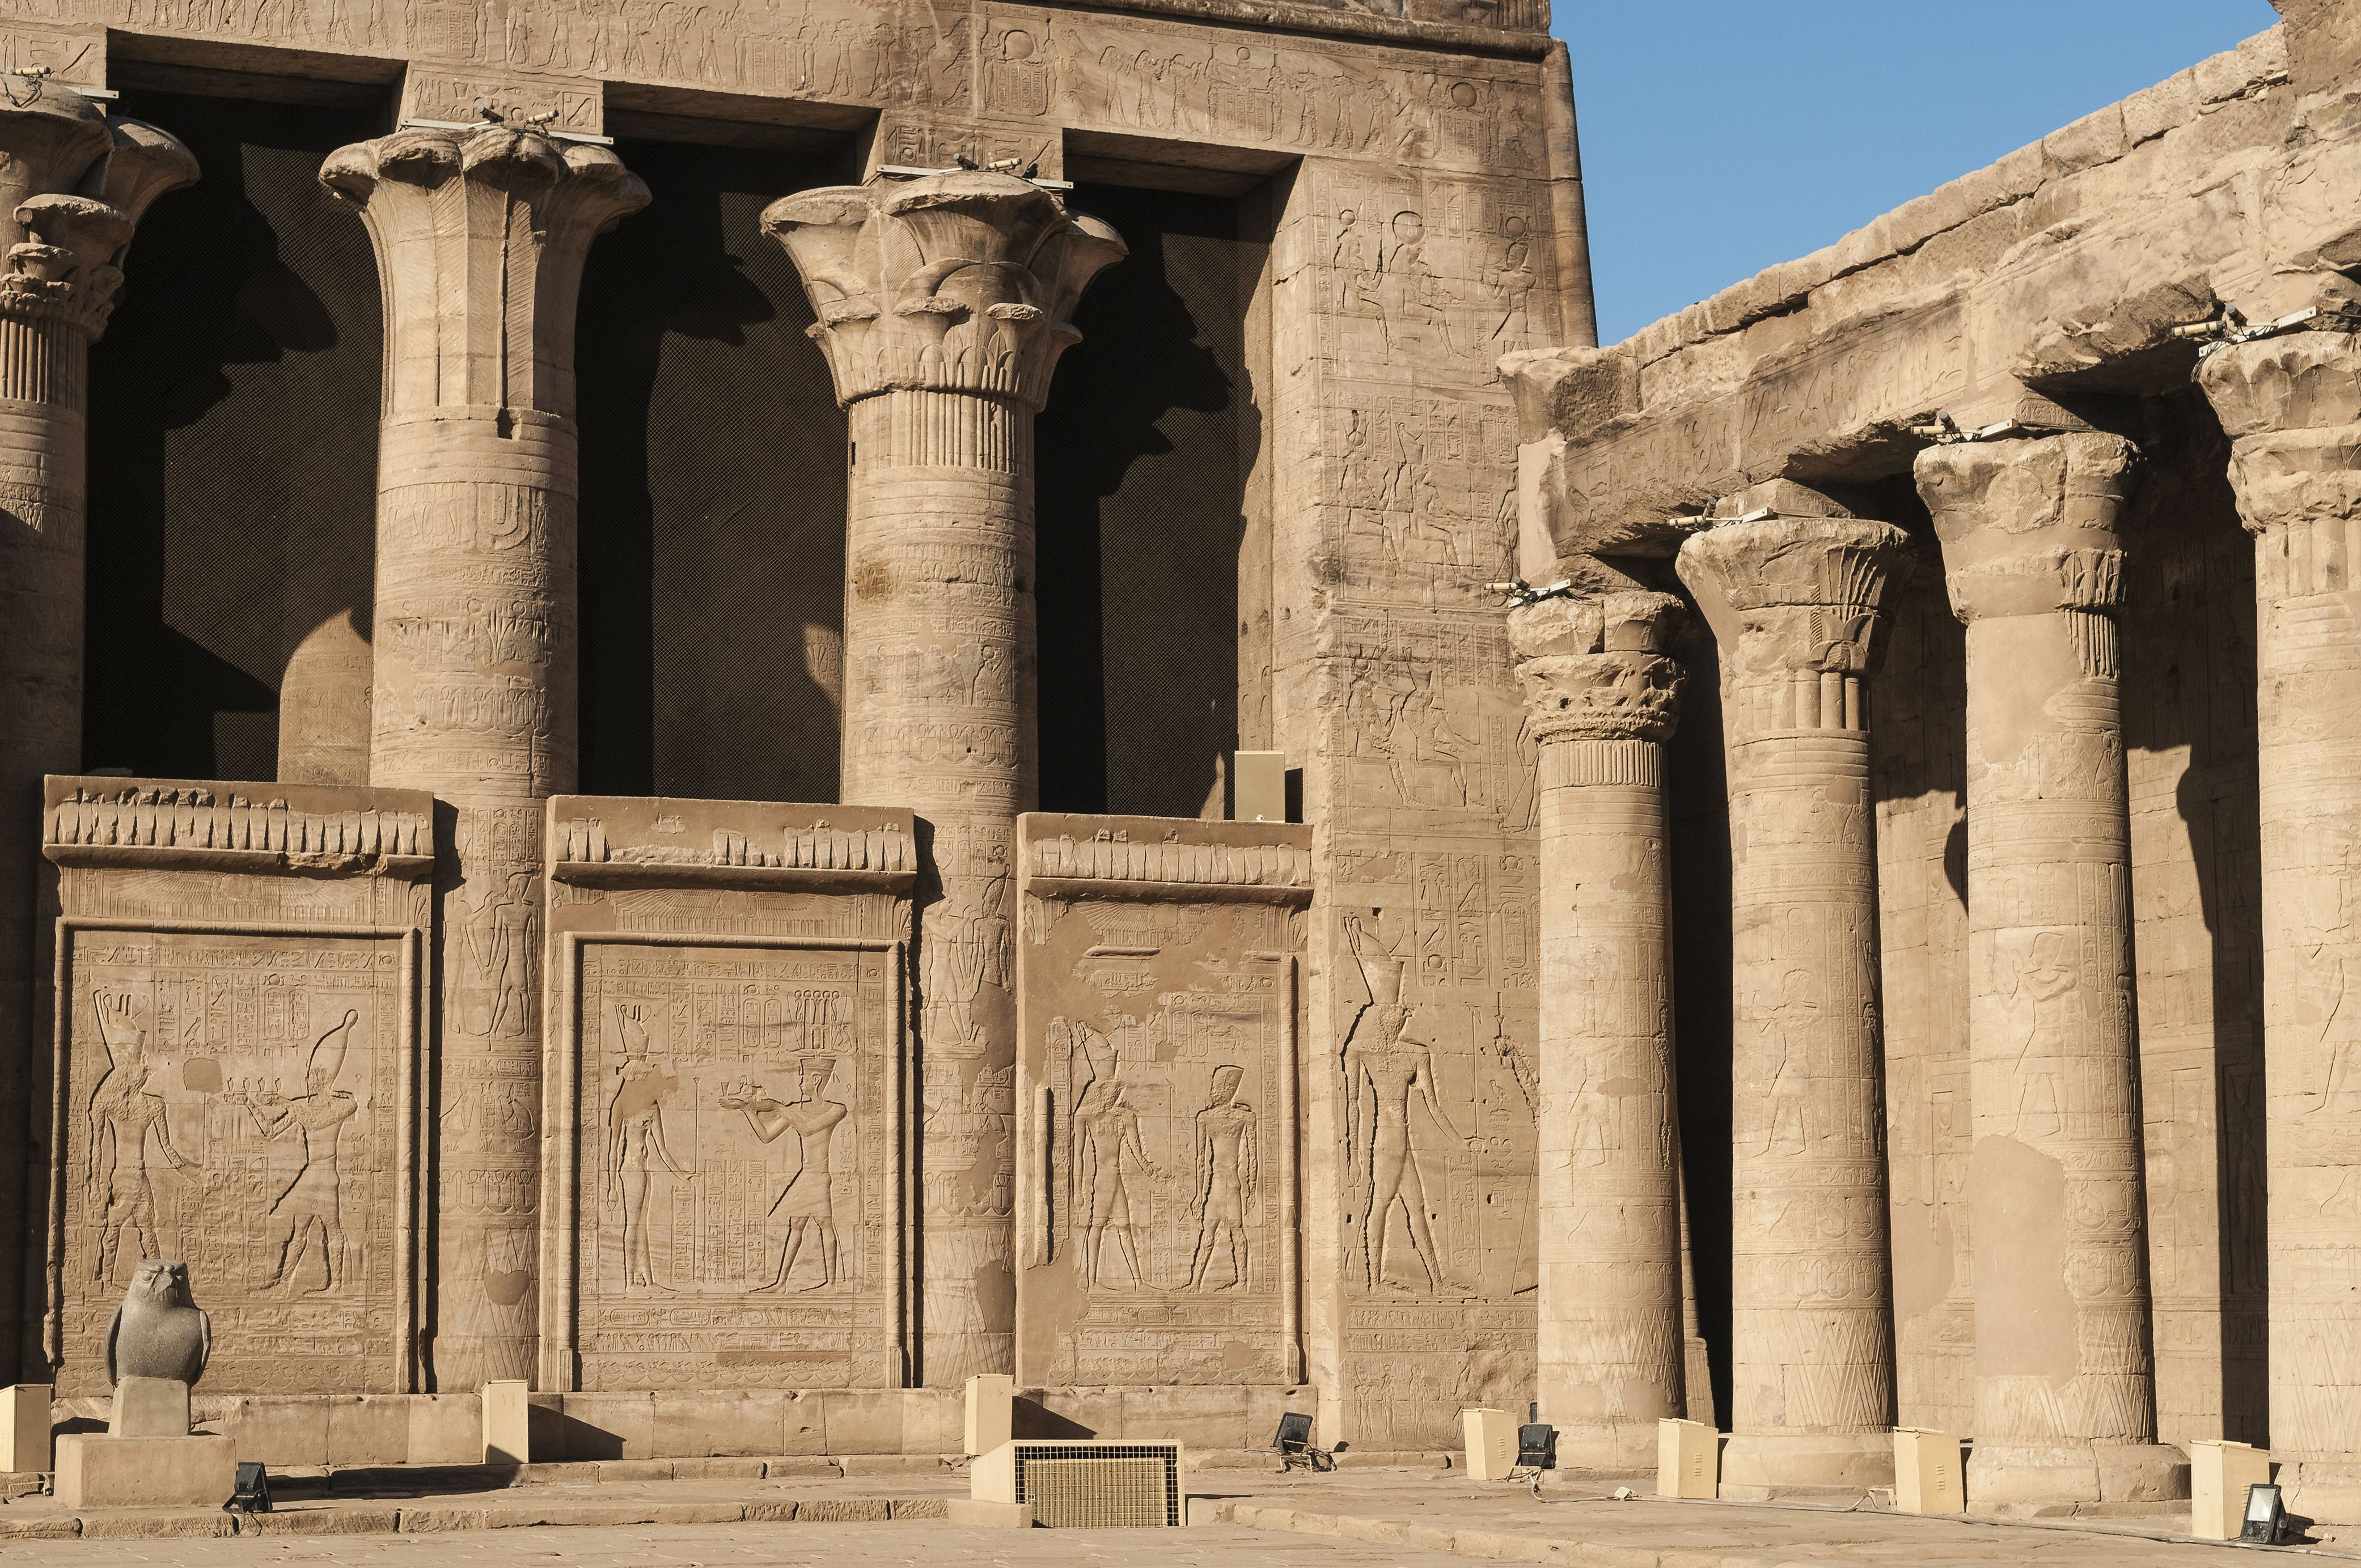 Sets of Columns at Temple of Horus, Egypt